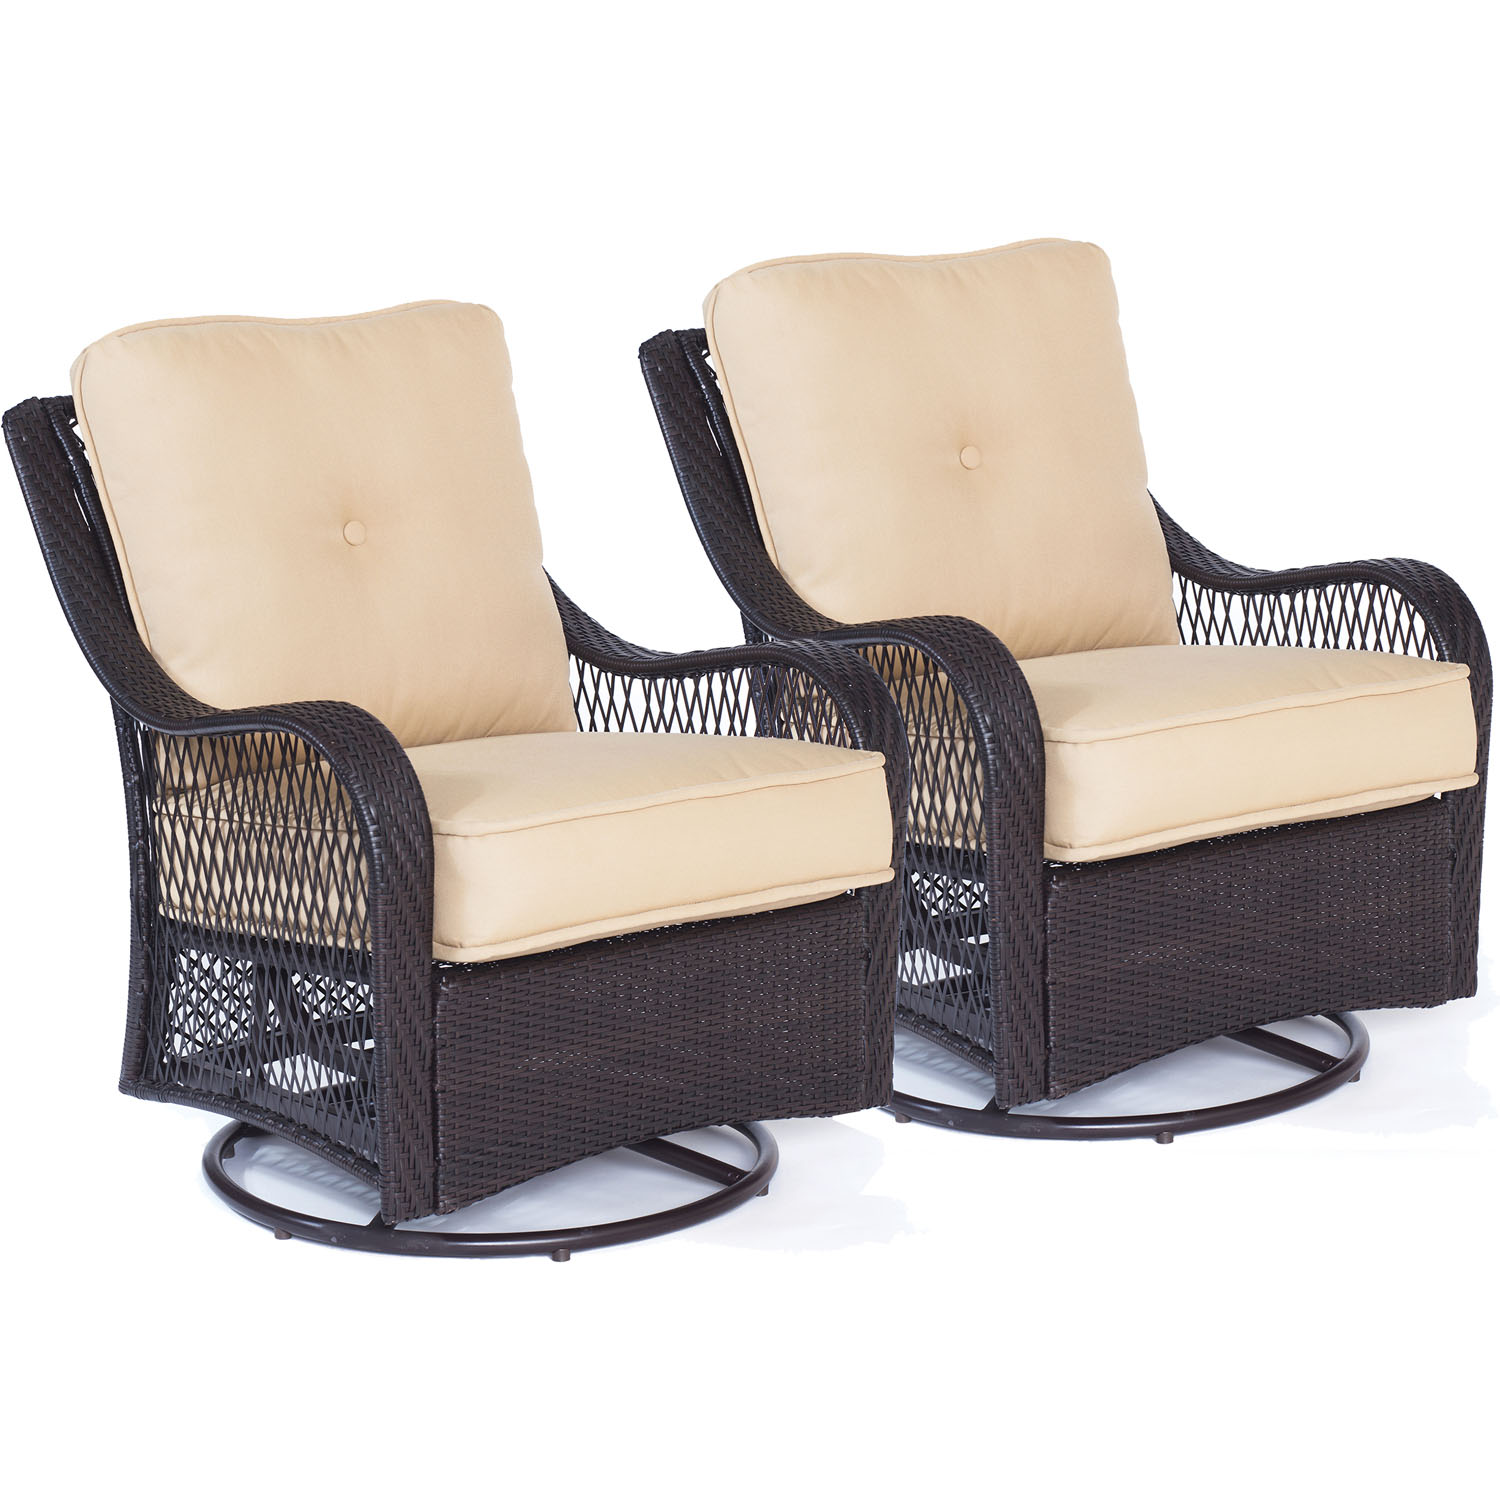 Swivel Rocking Chairs Hanover Orleans Outdoor Swivel Rocking Lounge Chairs